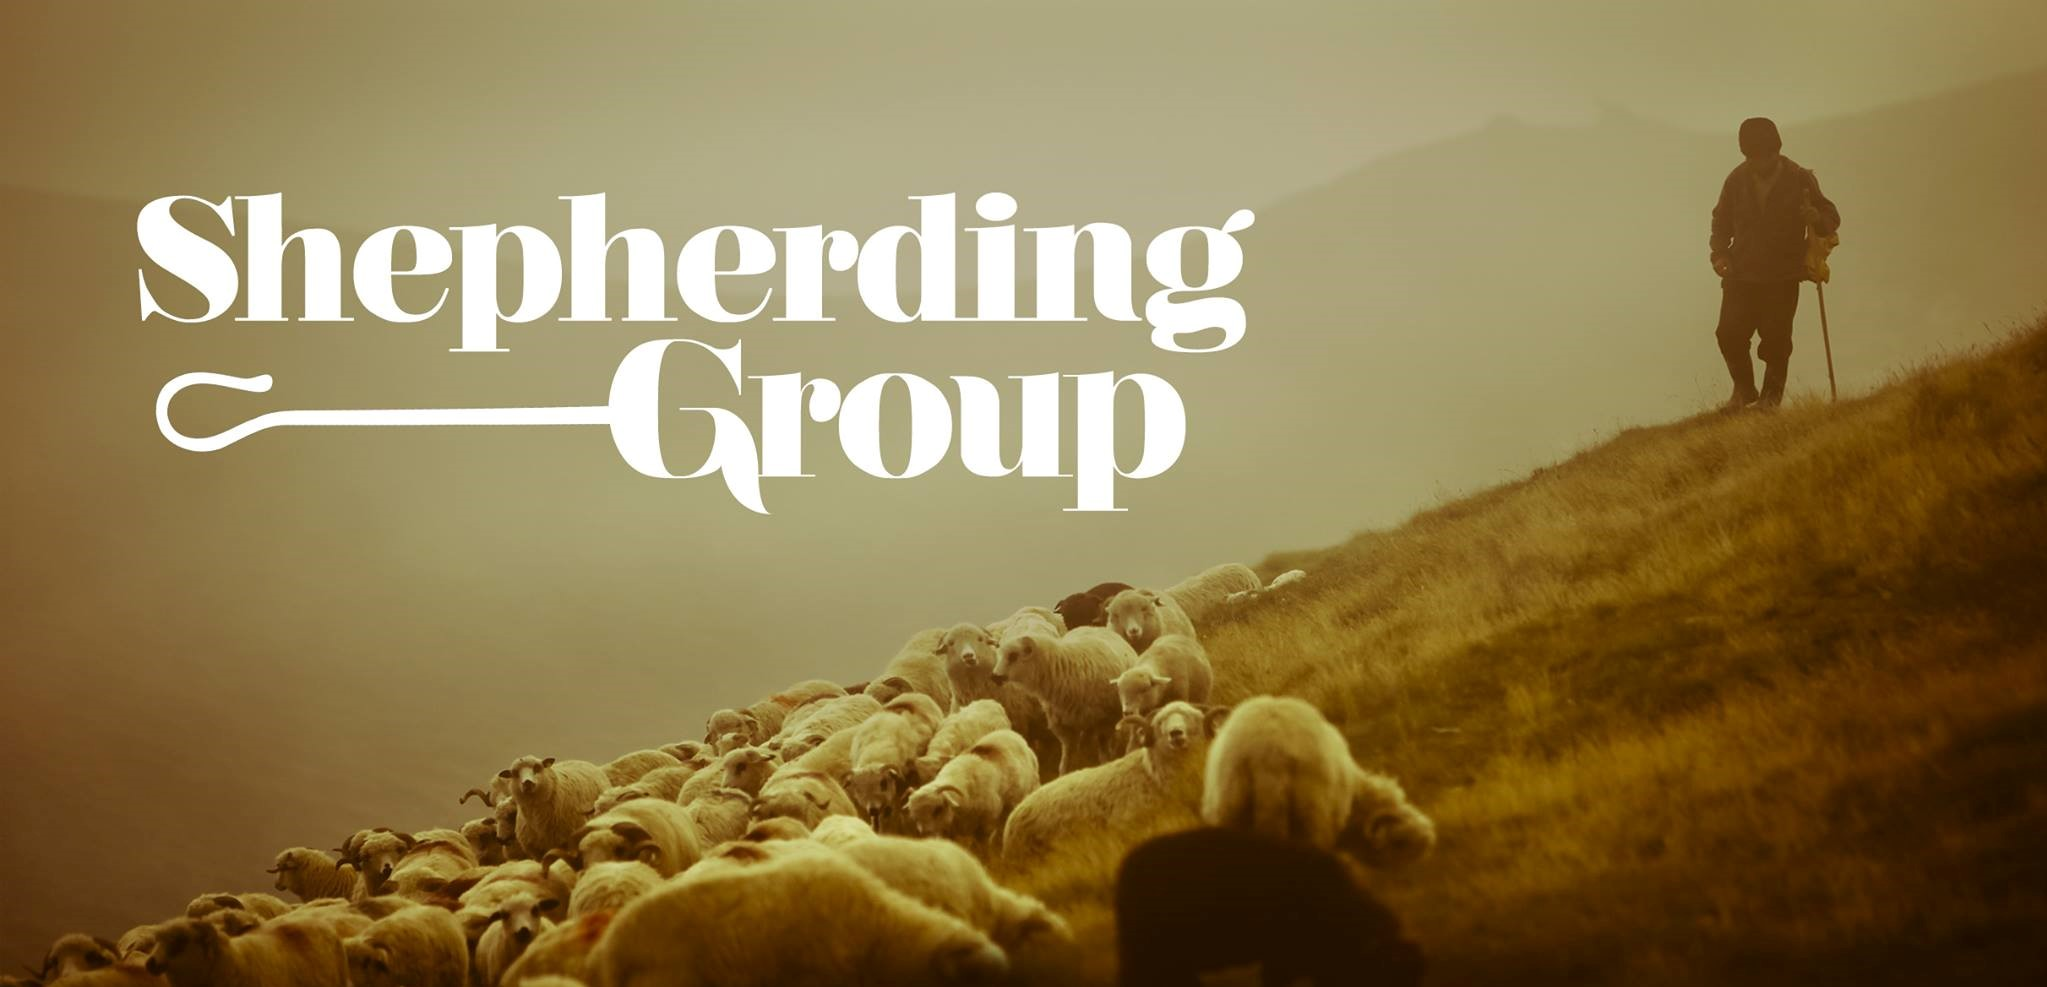 Shepherding Group (2)